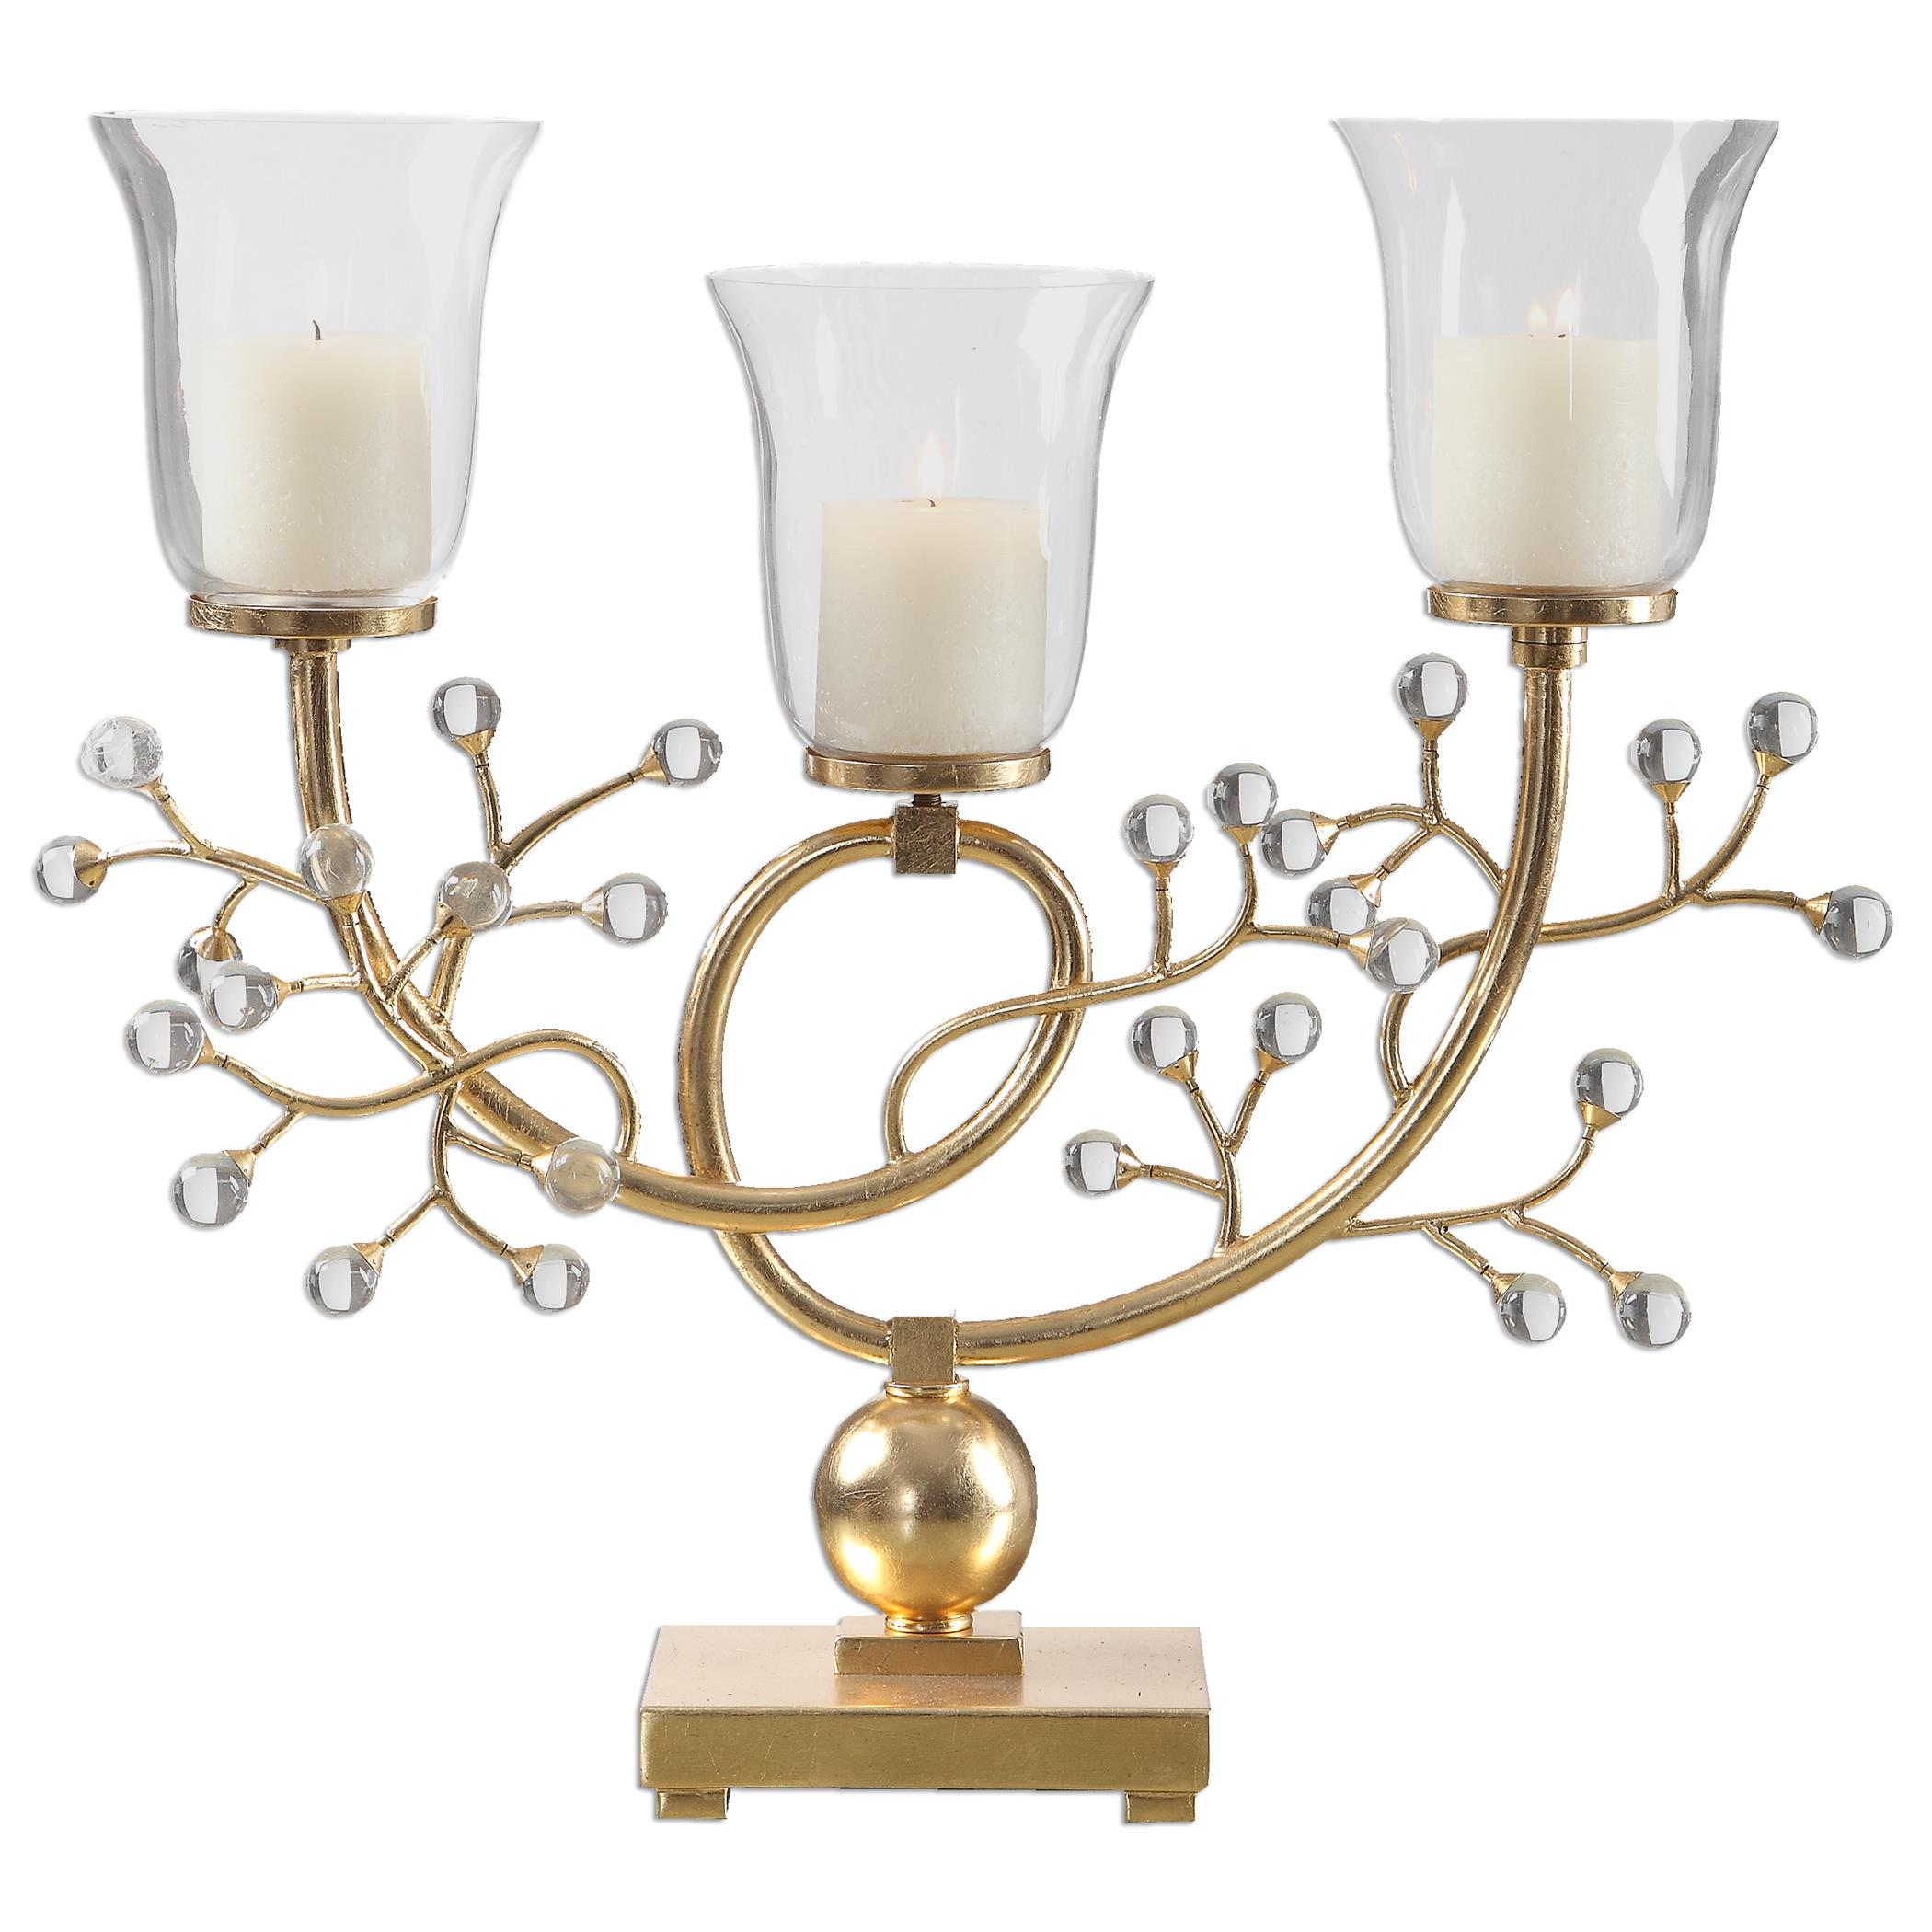 Uttermost Accessories Bede Metallic Gold Candelabra - Item Number: 20003